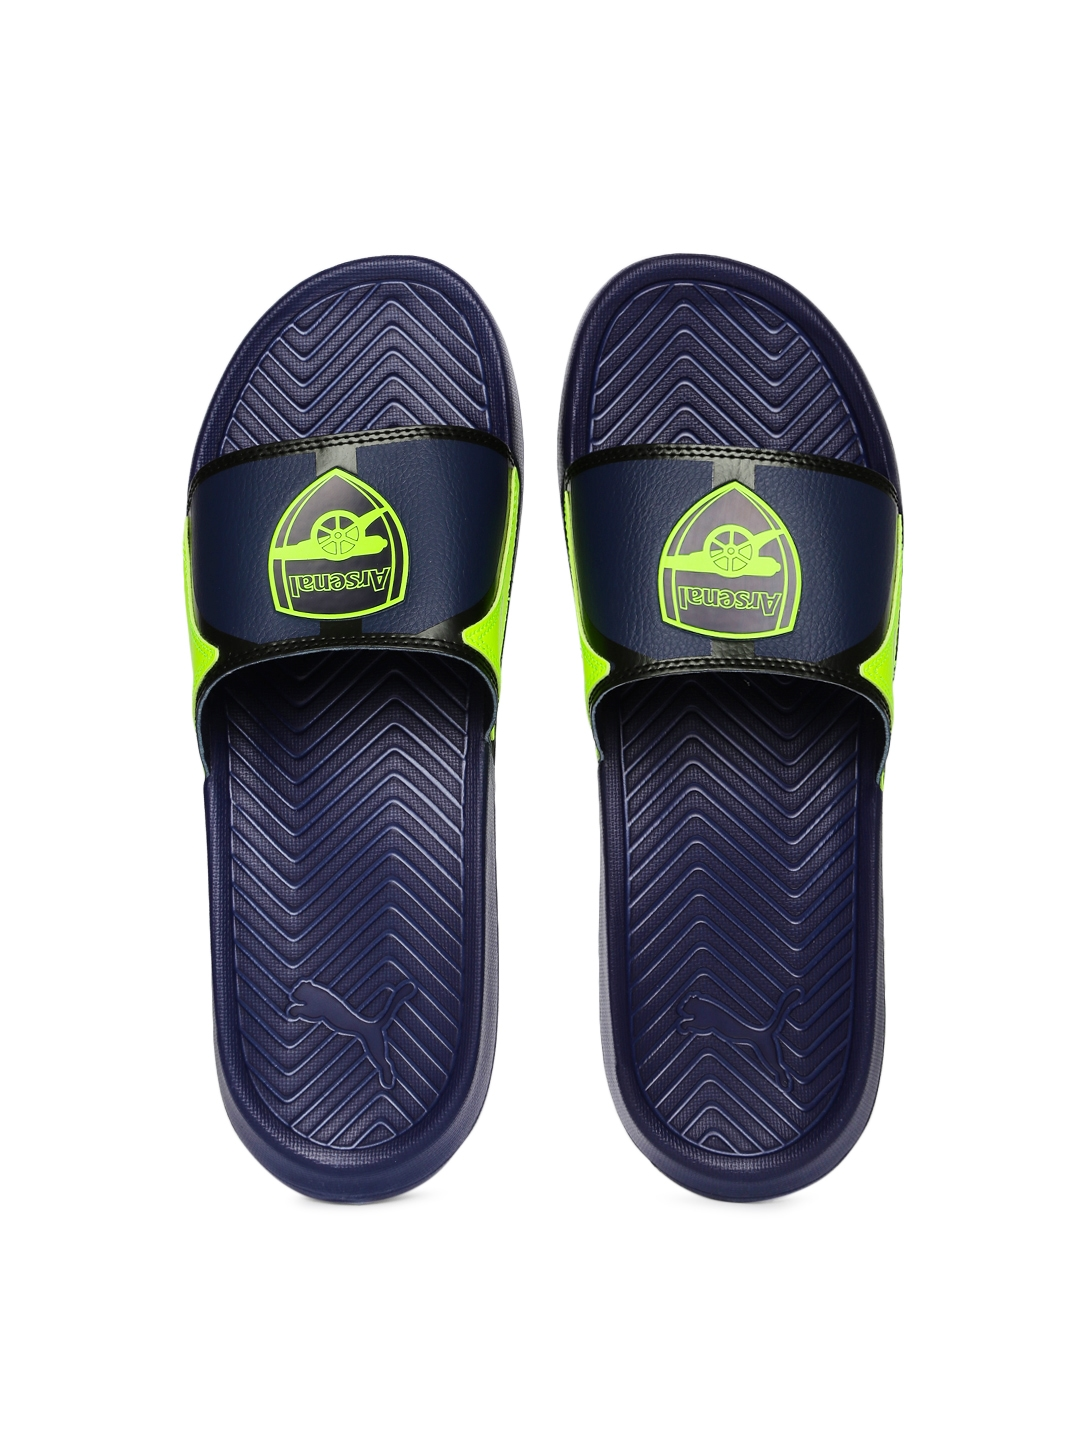 0b11567f89f7 Buy PUMA Popcat AFC Men Navy Printed Flip Flops - Flip Flops for Men ...